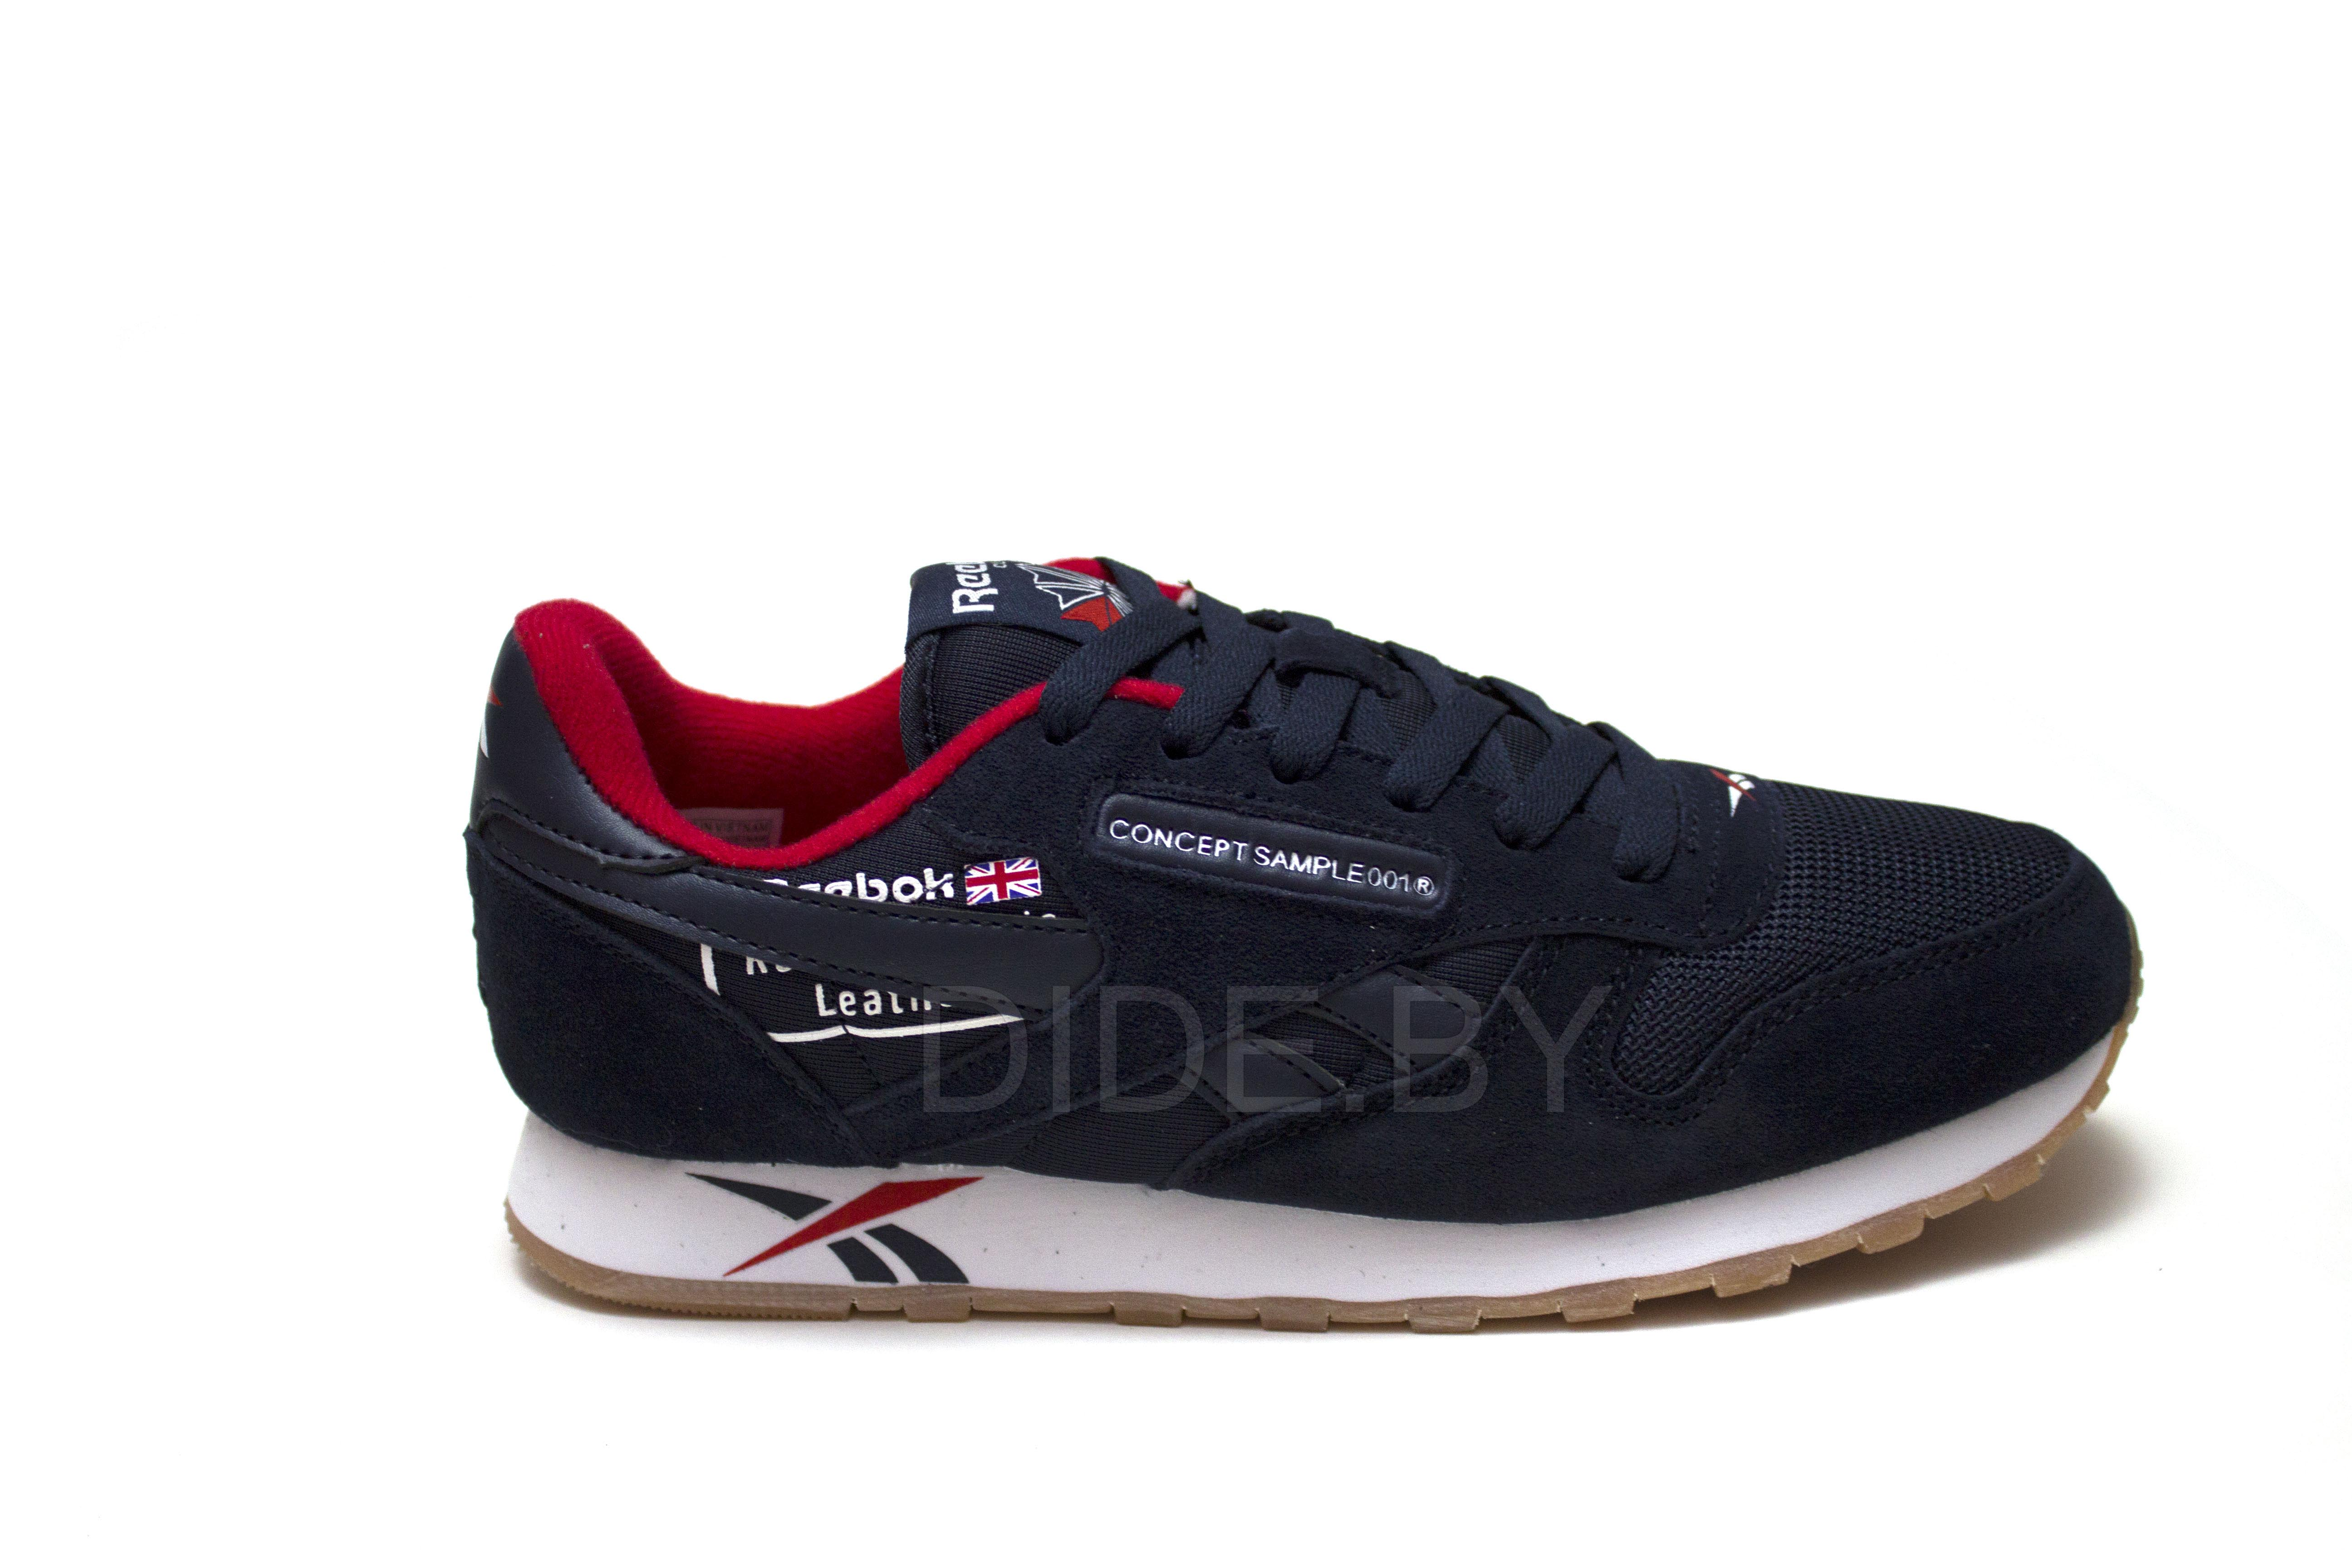 Изображение кроссовок reebok-concept-sample-001-143